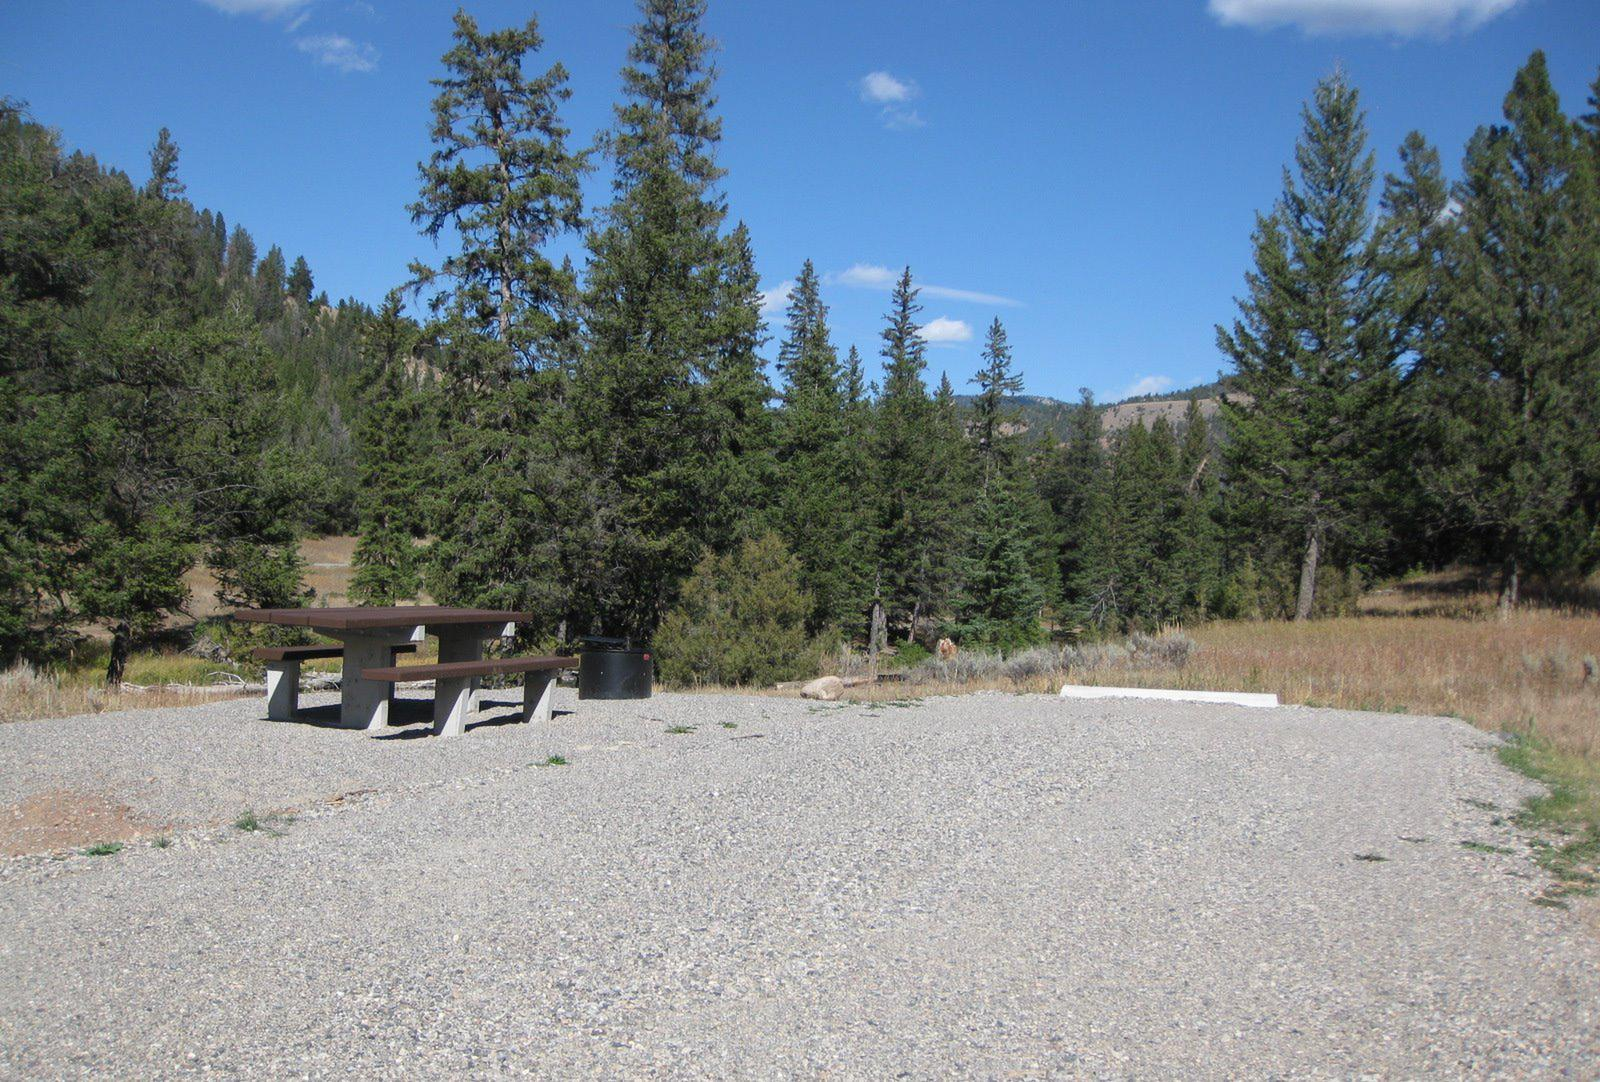 Site 52, campsite surrounded by pine trees, picnic table & fire ringSite 52